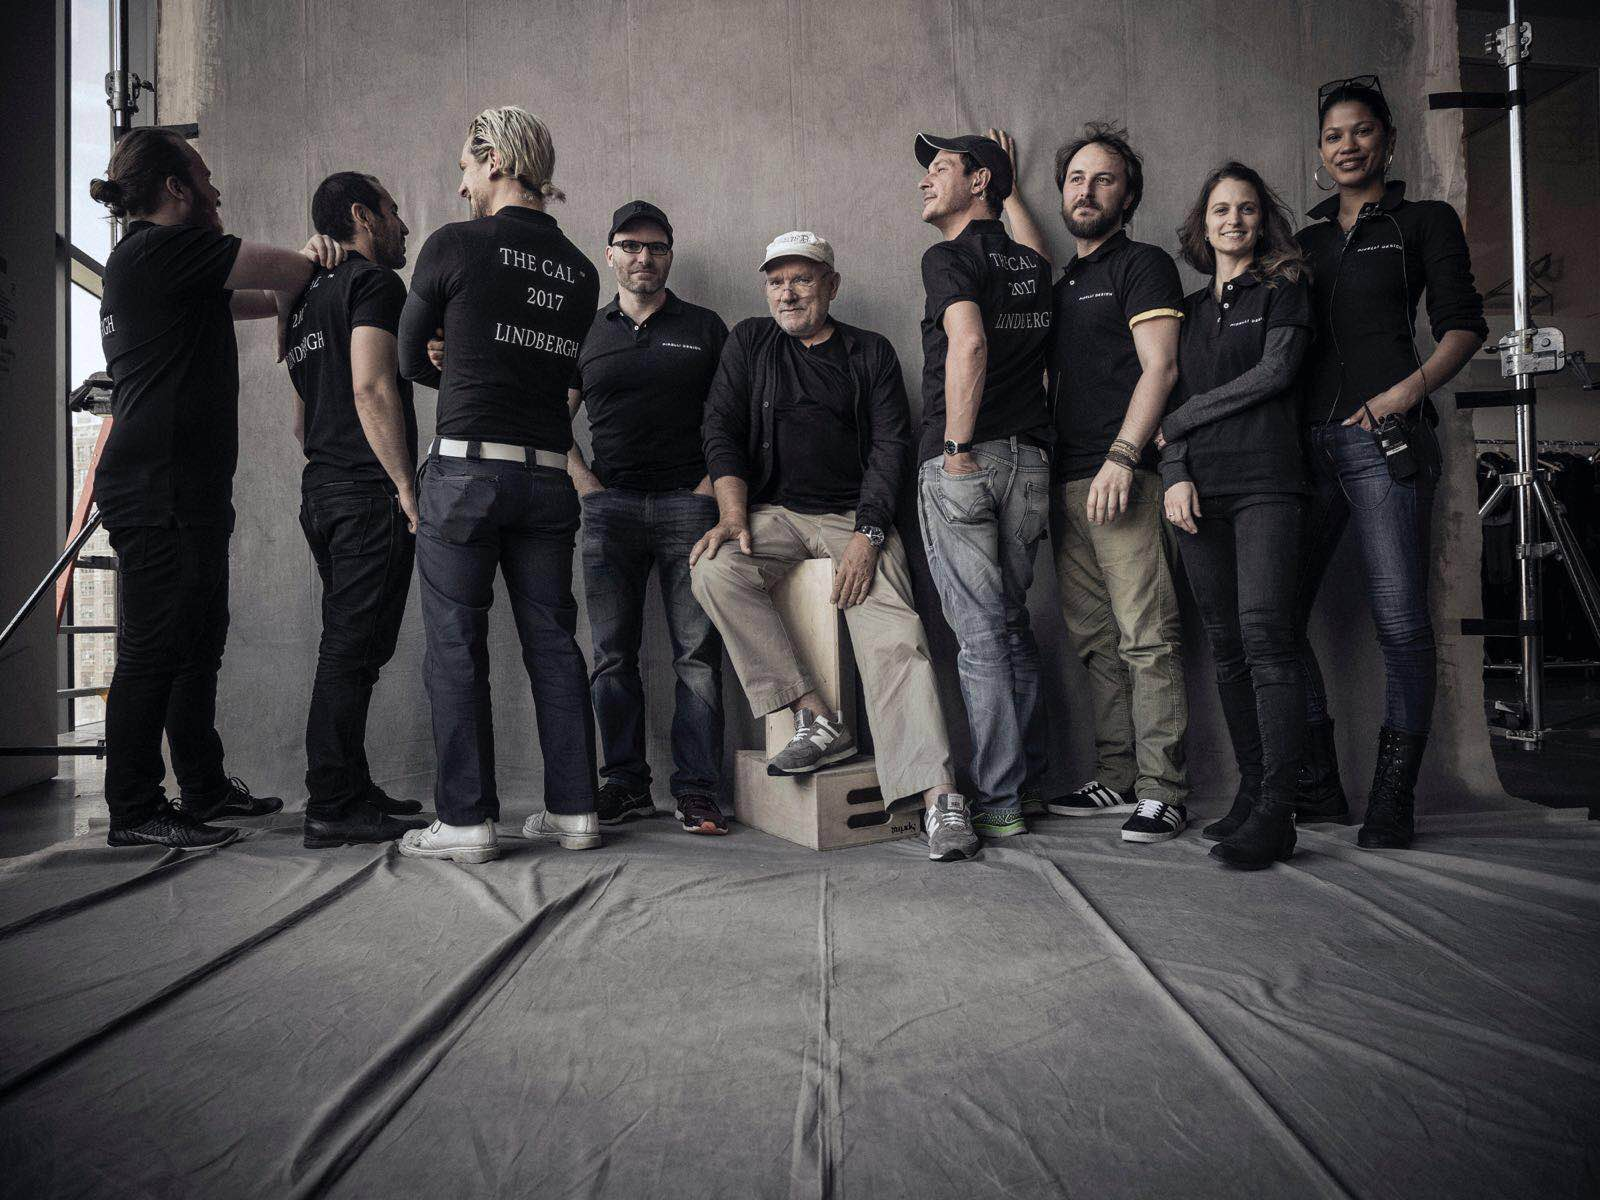 Peter Lindbergh will shoot the Pirelli calendar.